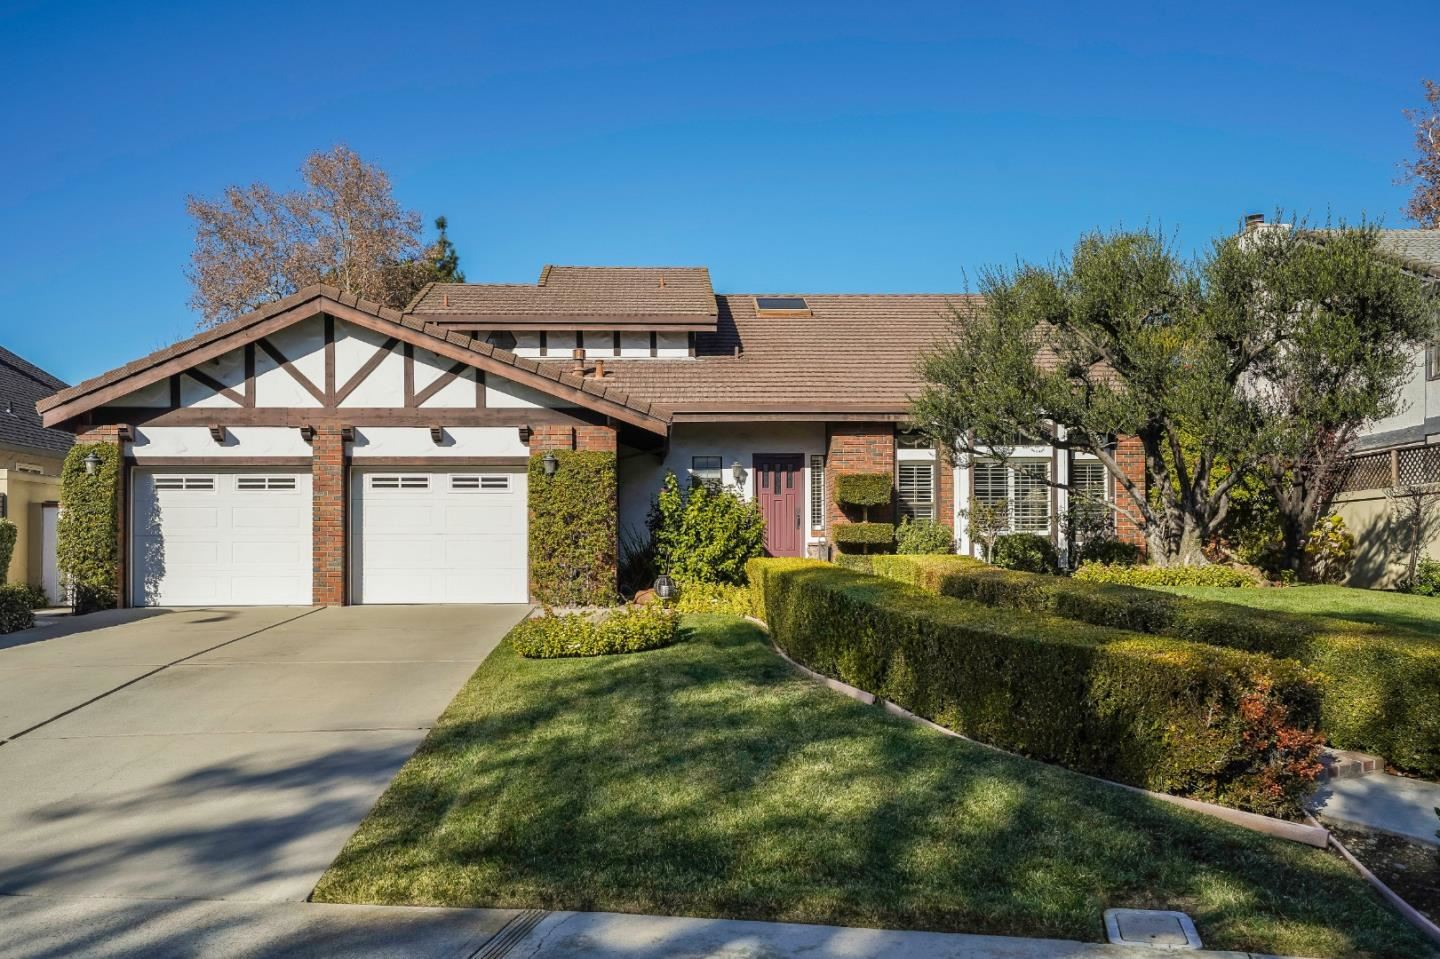 Photo for 795 Dry Creek RD, CAMPBELL, CA 95008 (MLS # ML81823967)